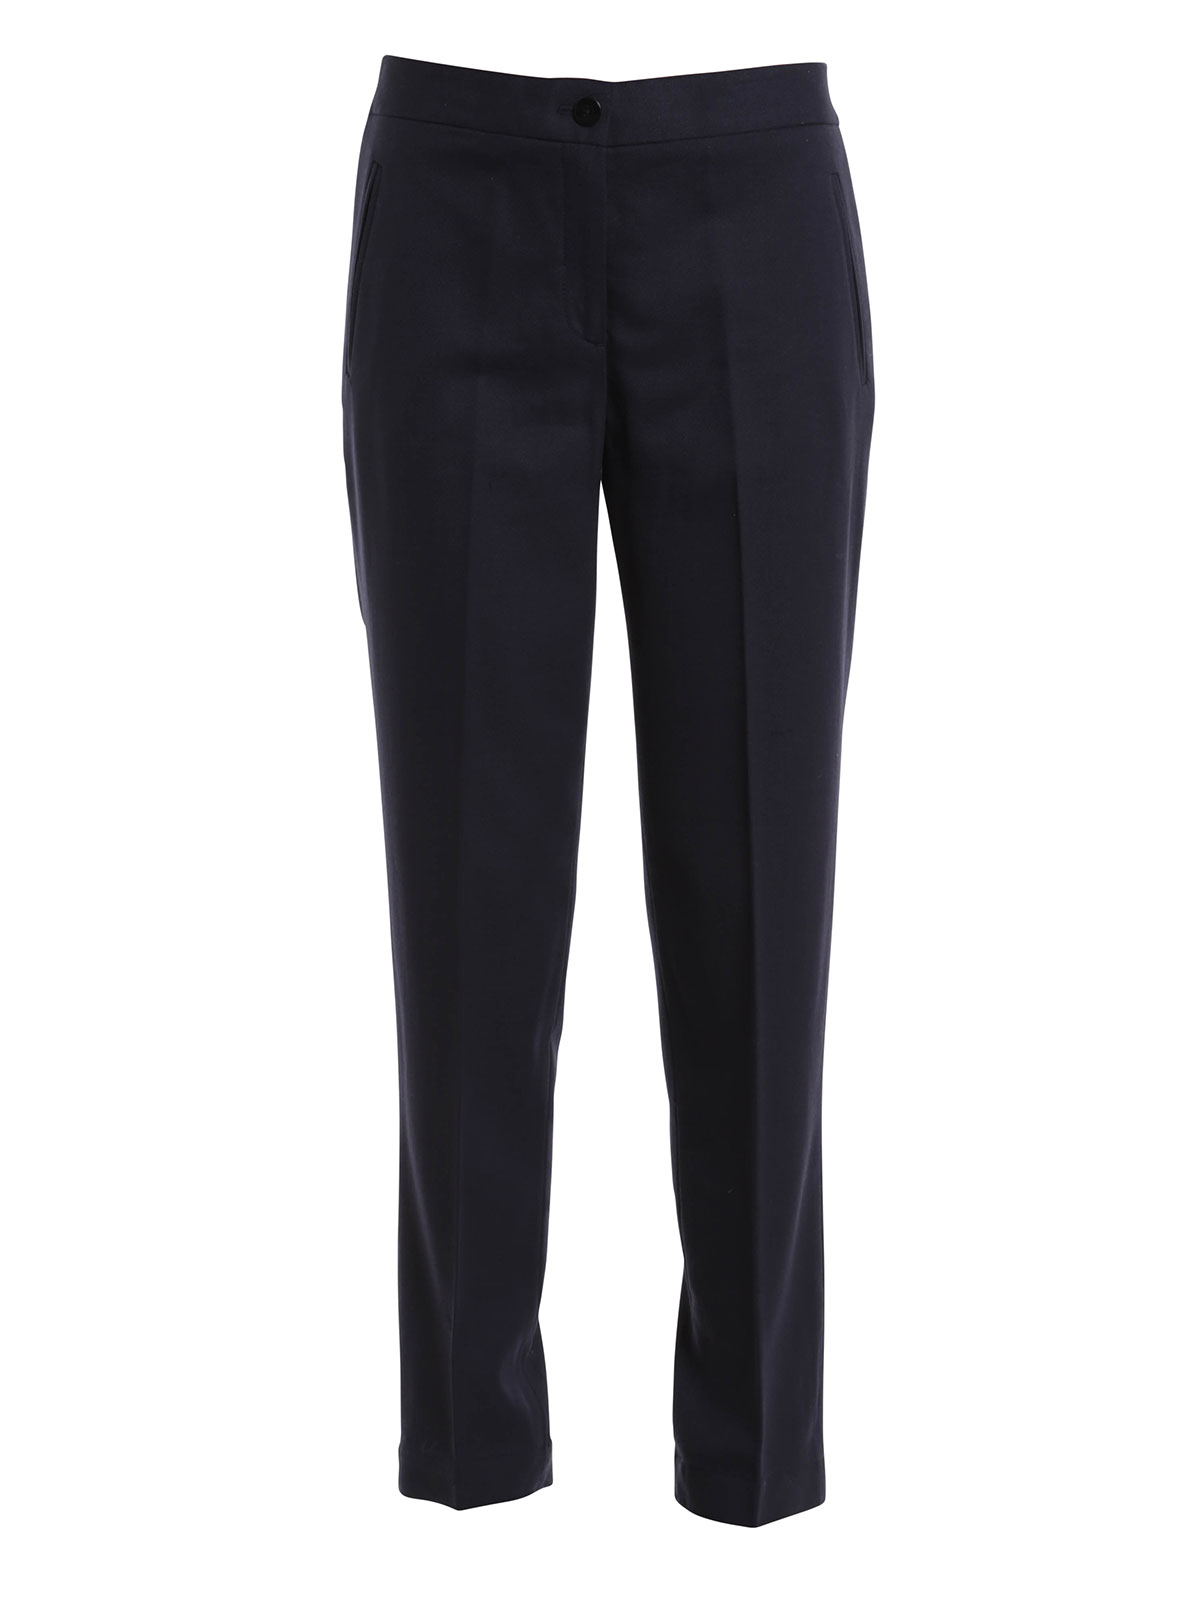 957fed30c506 Tory Burch - Stretch suiting pants - Tailored & Formal trousers ...